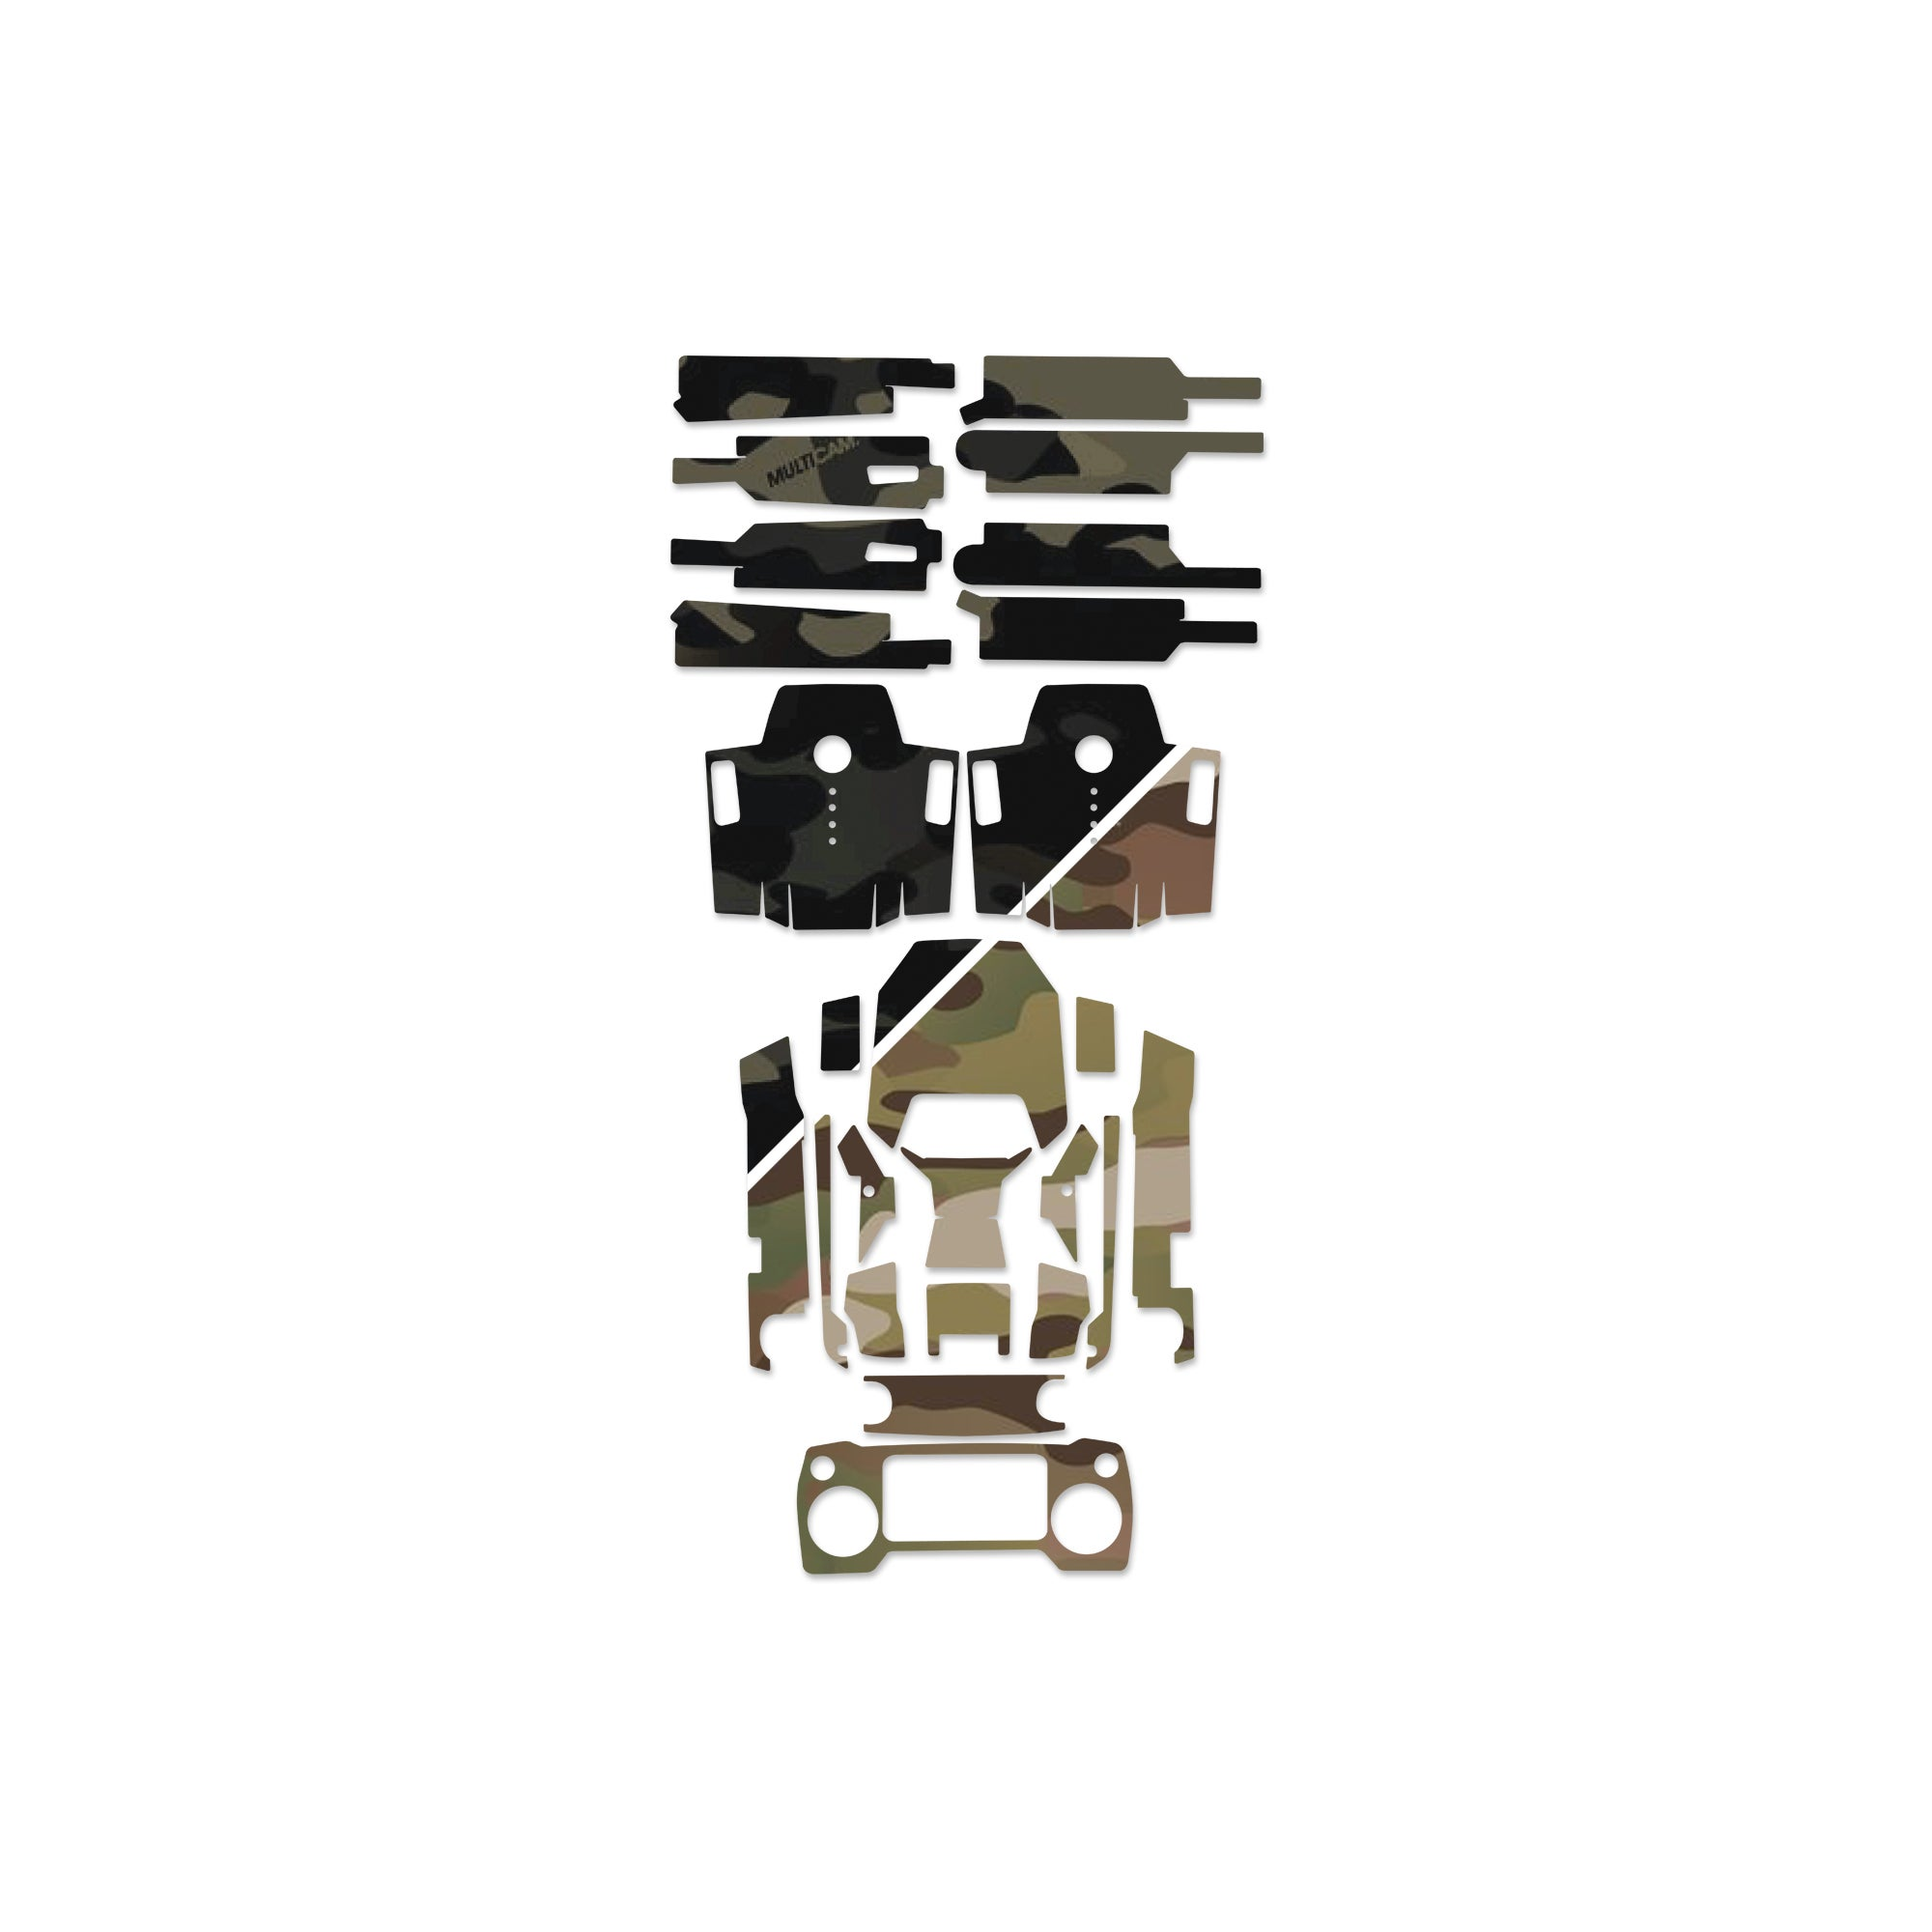 daf1a68a74e 3M Official Multicam DJI Mavic 1/2 - Zoom - Air - Spark Skin | Tam